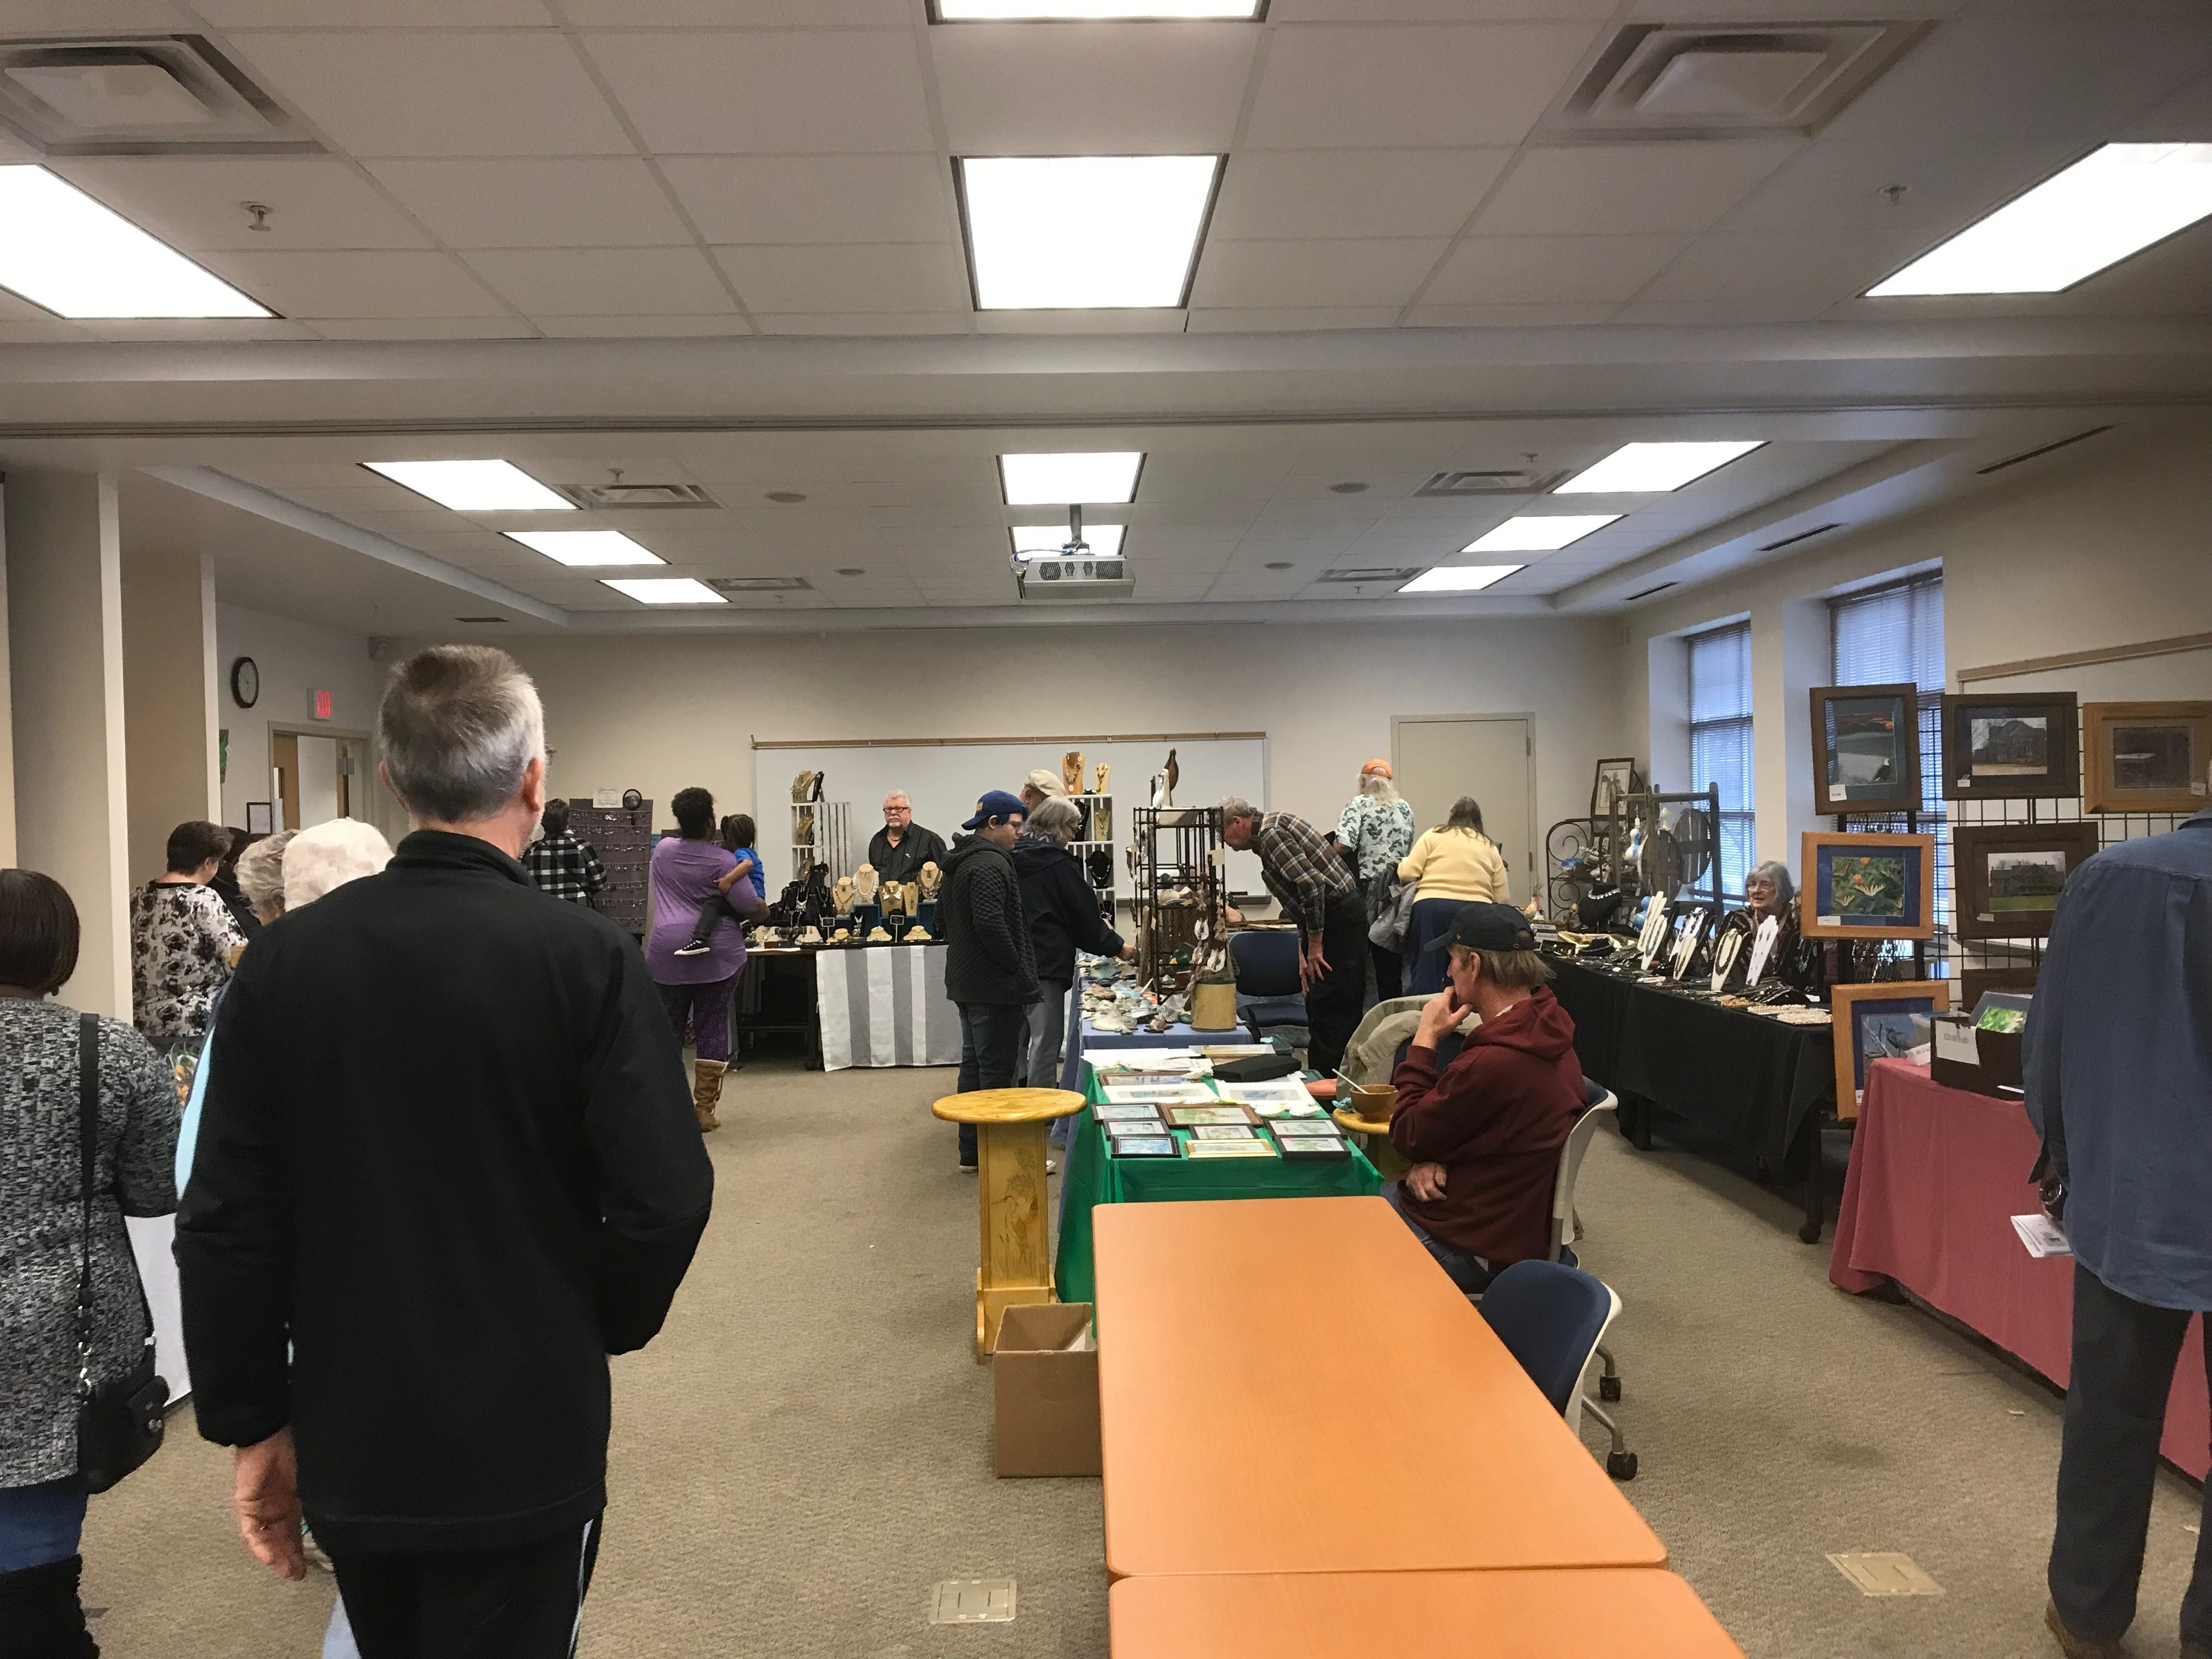 Attendees look at the work of artists and craftspeople at Eastern Shore Community College's Heritage Festival on Saturday, Feb. 23, 2019.